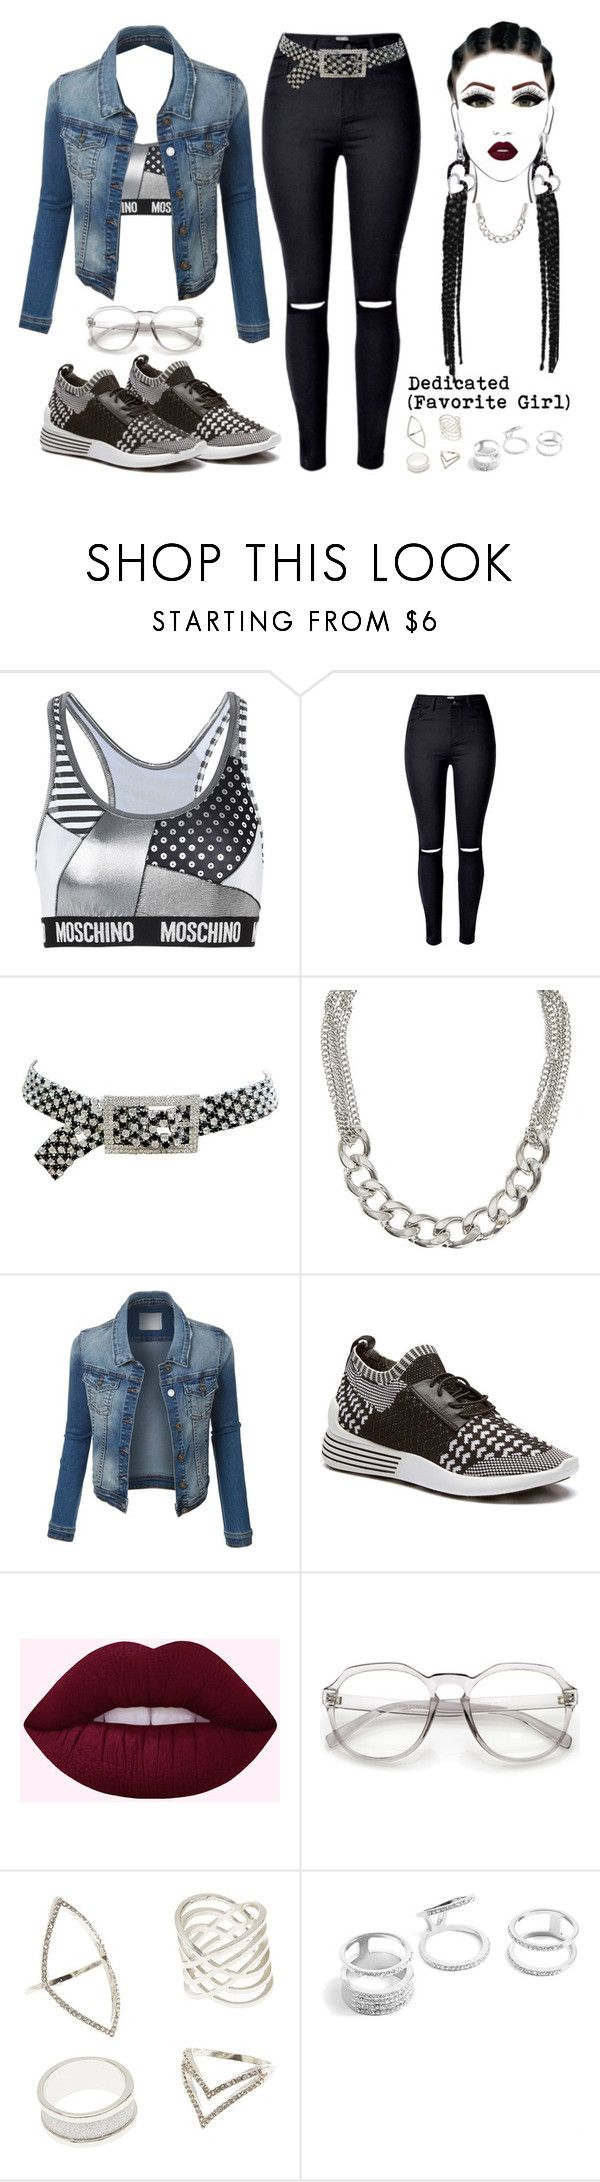 """R. Kelly- Dedicated (Favorite Girl)"" by texasradiance ❤ liked on Polyvore featuring Moschino, Kenneth Jay Lane, claire's, Charlotte Russe and GUESS"